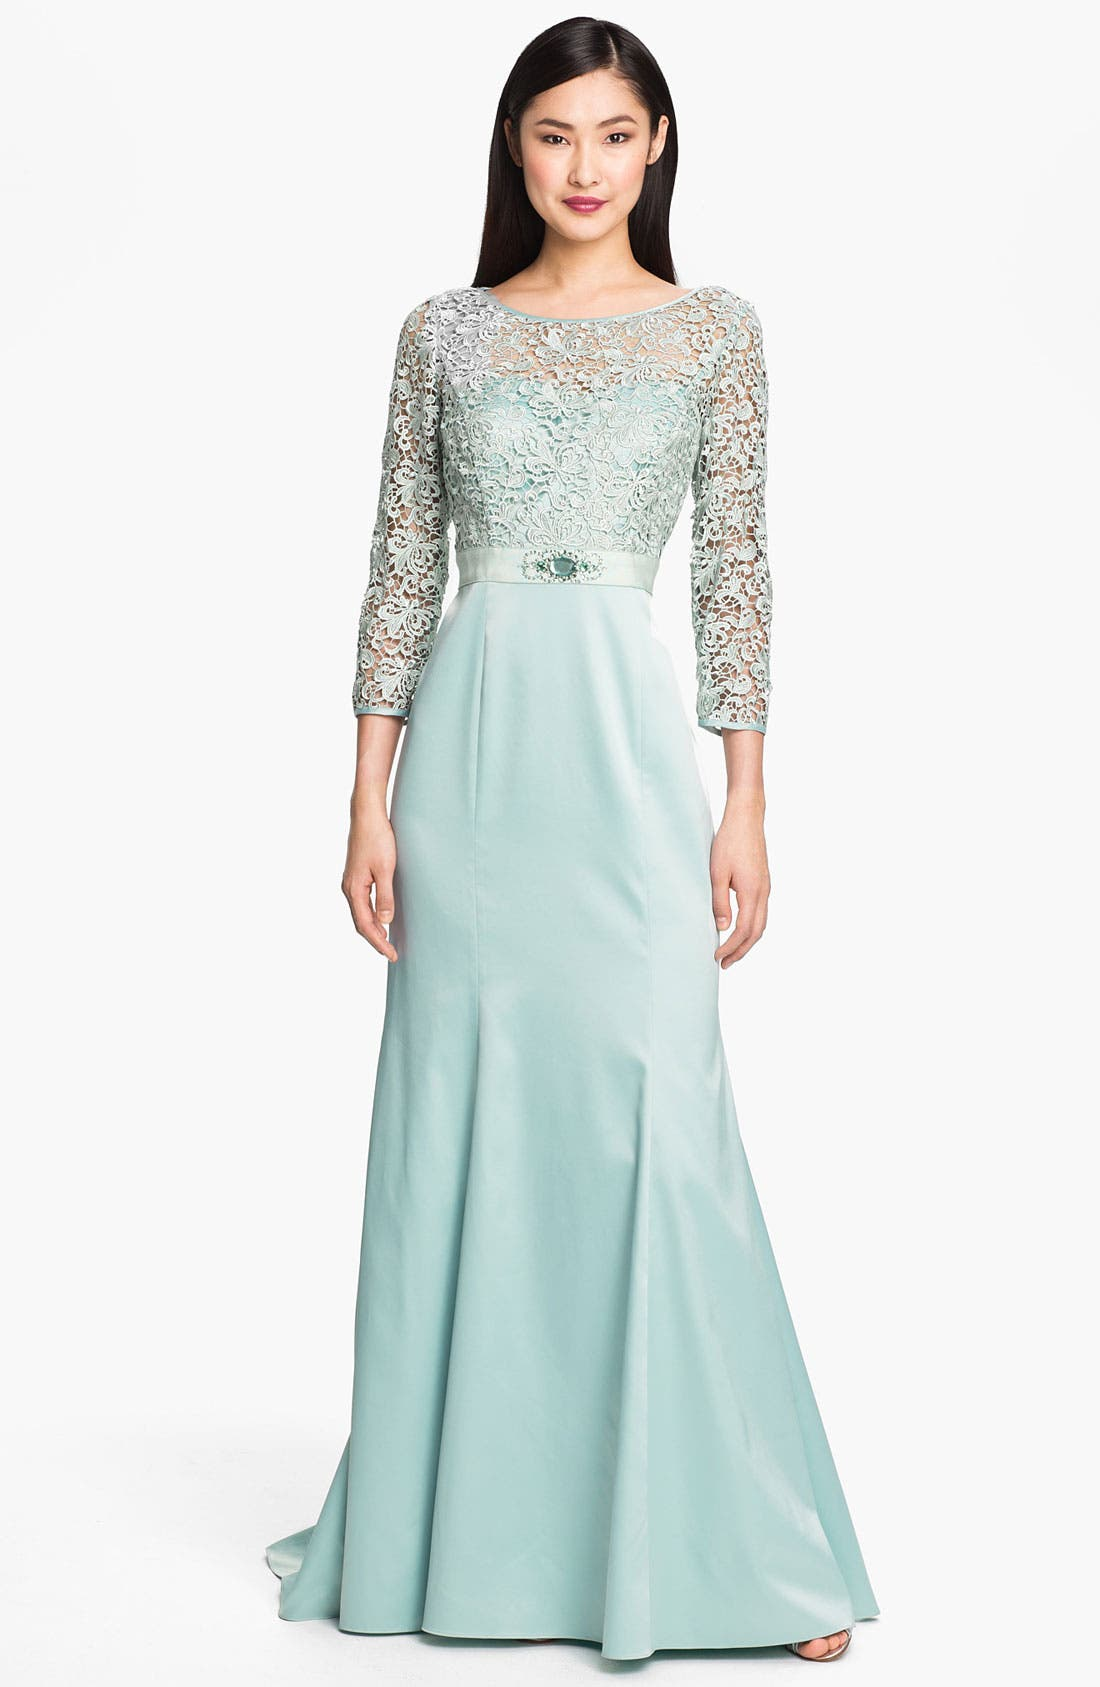 Alternate Image 1 Selected - Adrianna Papell Embellished Lace & Satin Trumpet Gown